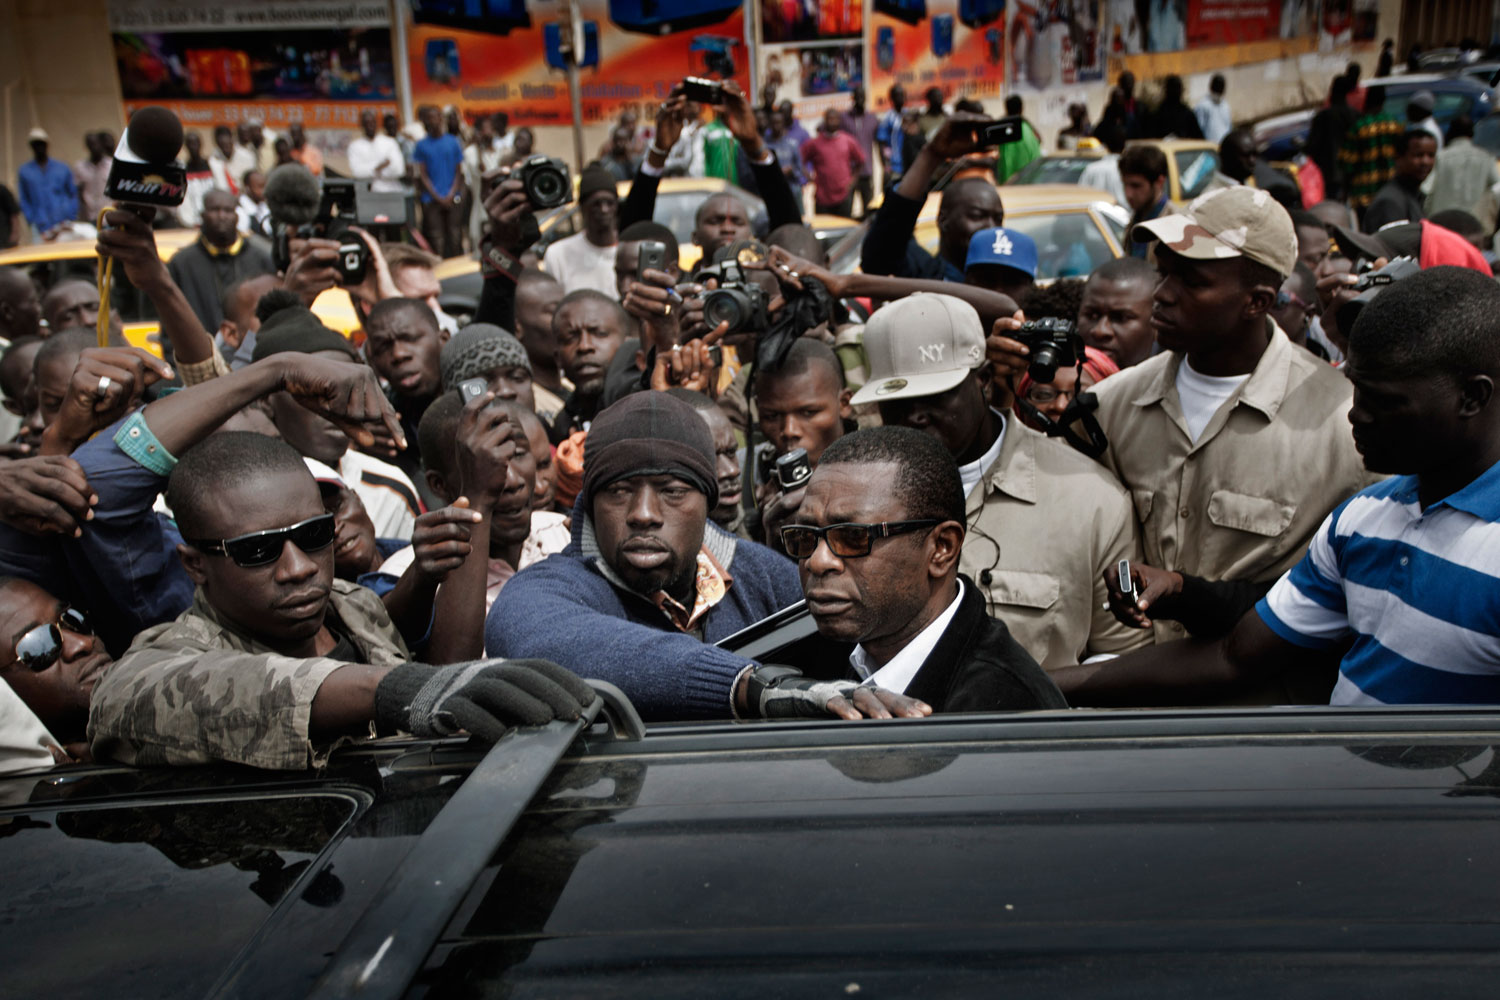 Dakar, Senegal, Feb. 15, 2012. Youssou N'Dour looks at the crowd forming around him in Independence Square after street clashes between protesters and police.